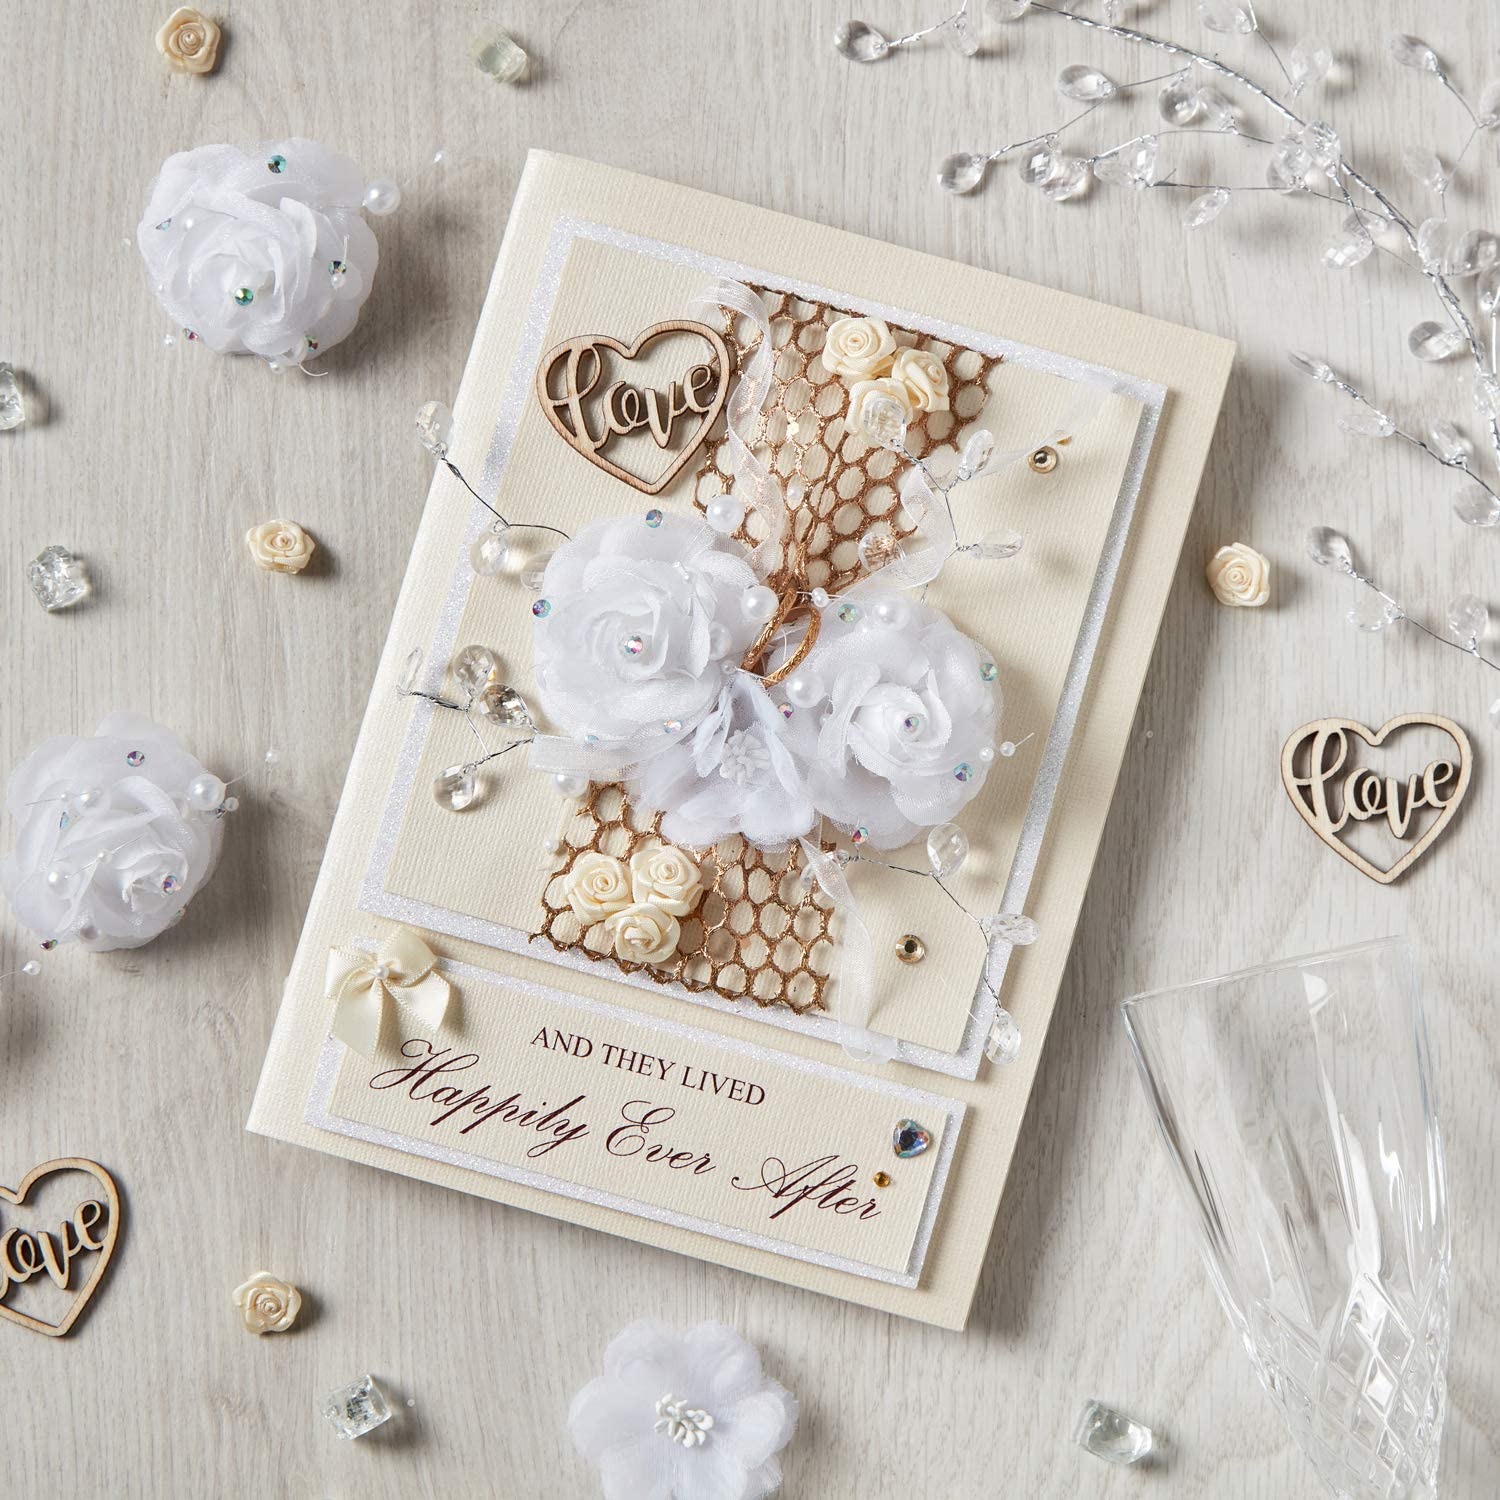 Handmade UK Wedding Gift Card 3D Gift for The Bride and Groom Mr and Mrs to be Wedding Day Card Congratulations Luxury /'and They Lived Happily Ever After/' Keepsake Boxed Wedding Card